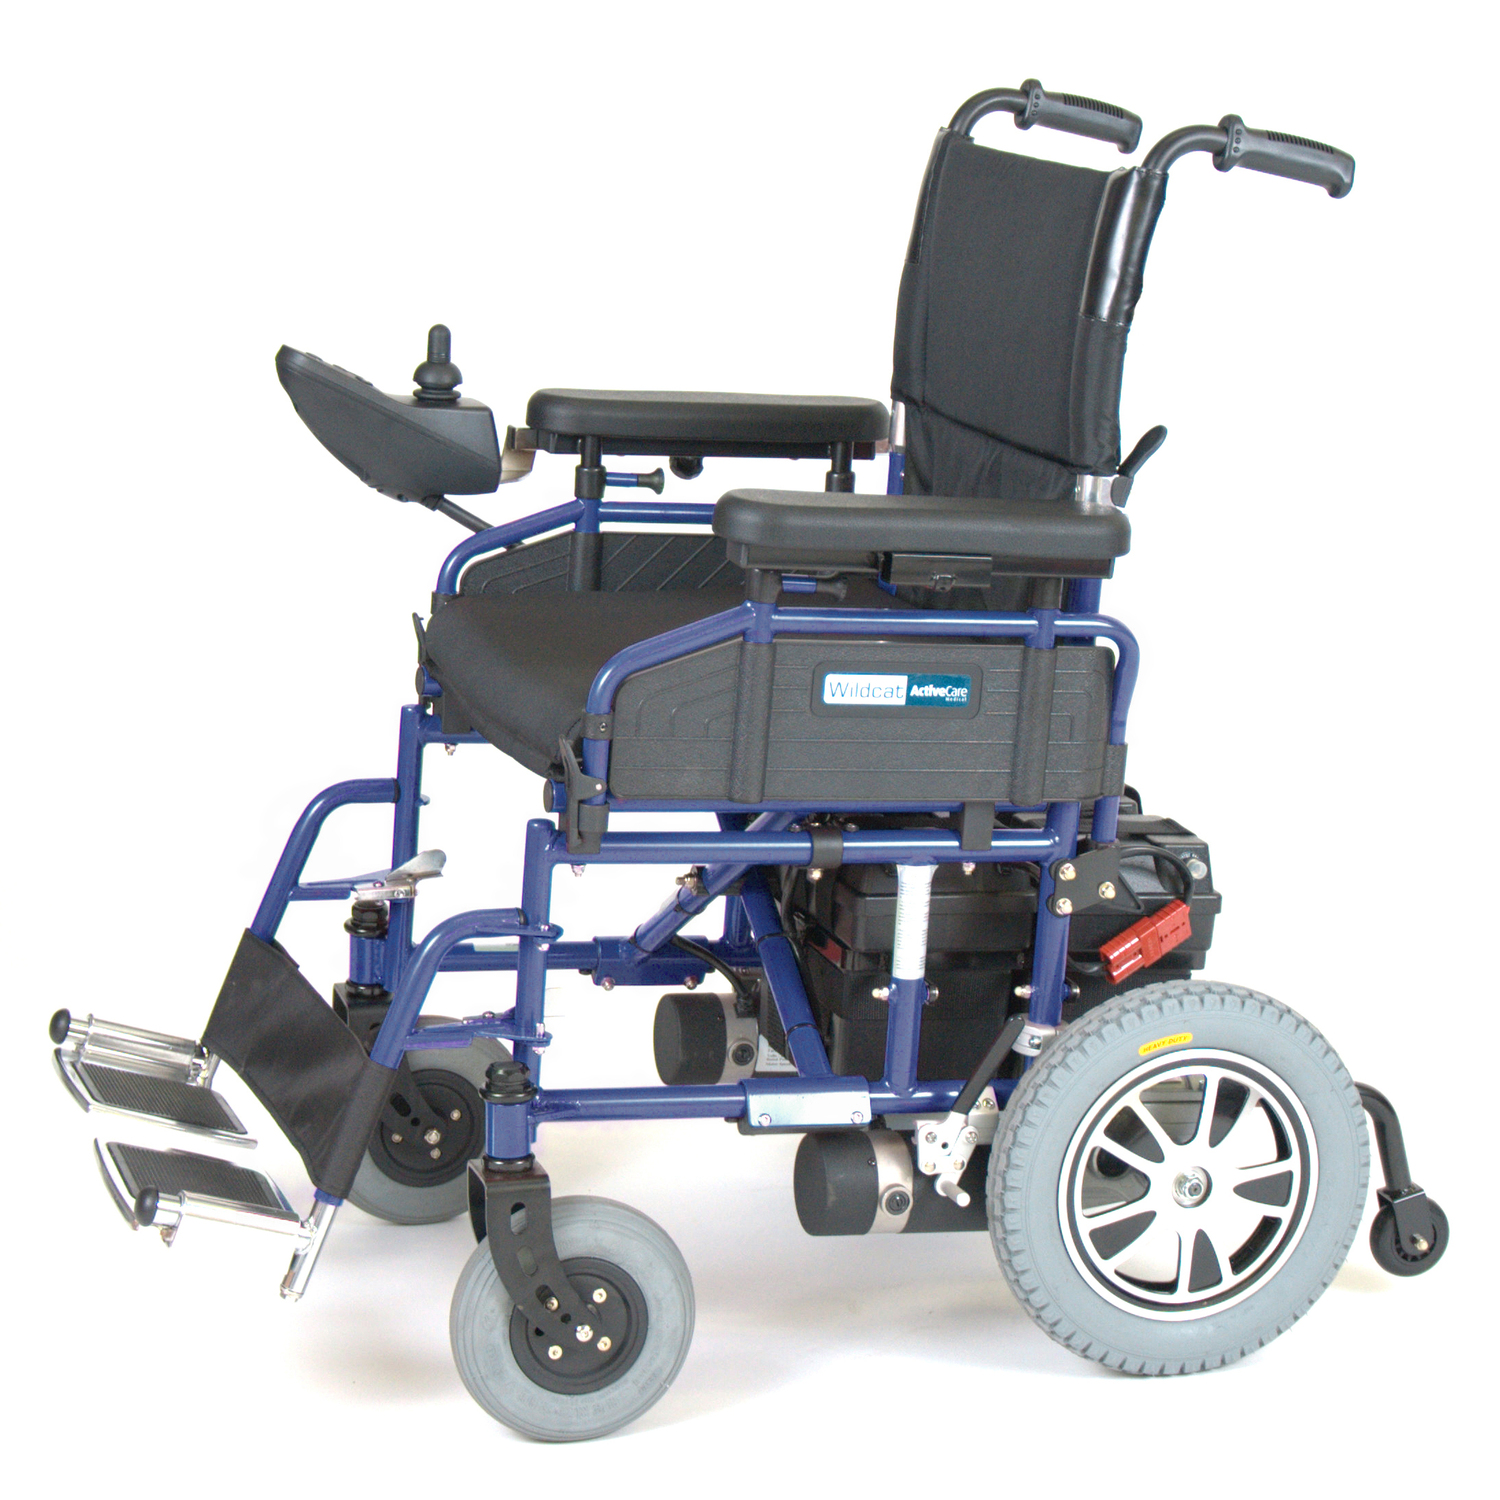 Electric Wheel Chairs Furniture Home Goods Appliances Athletic Gear Fitness